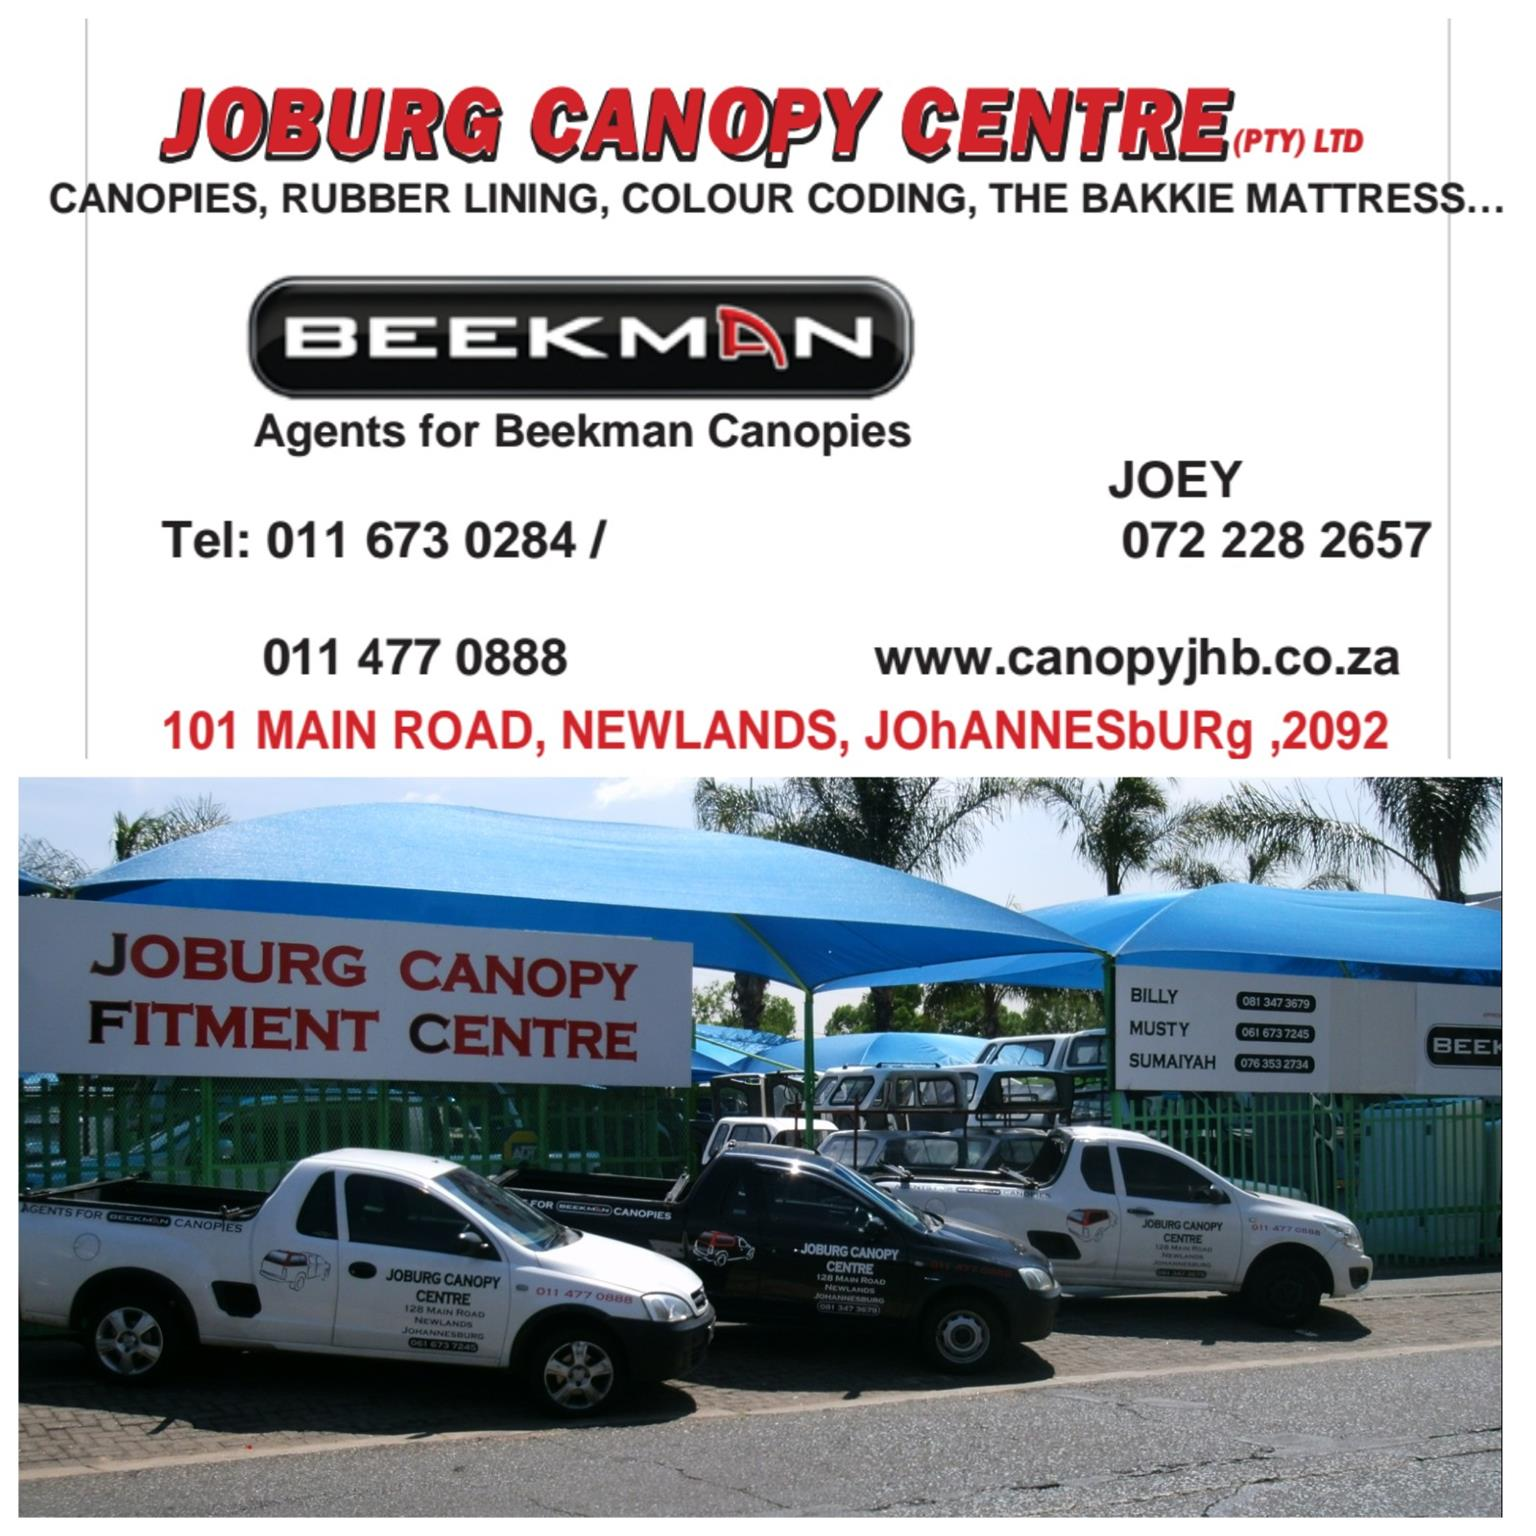 canopy new chev viva lowline beekman  sc 1 st  Junk Mail & All Ads in South Africa for JOBURG CANOPY CENTRE (PTY) LTD | Junk Mail